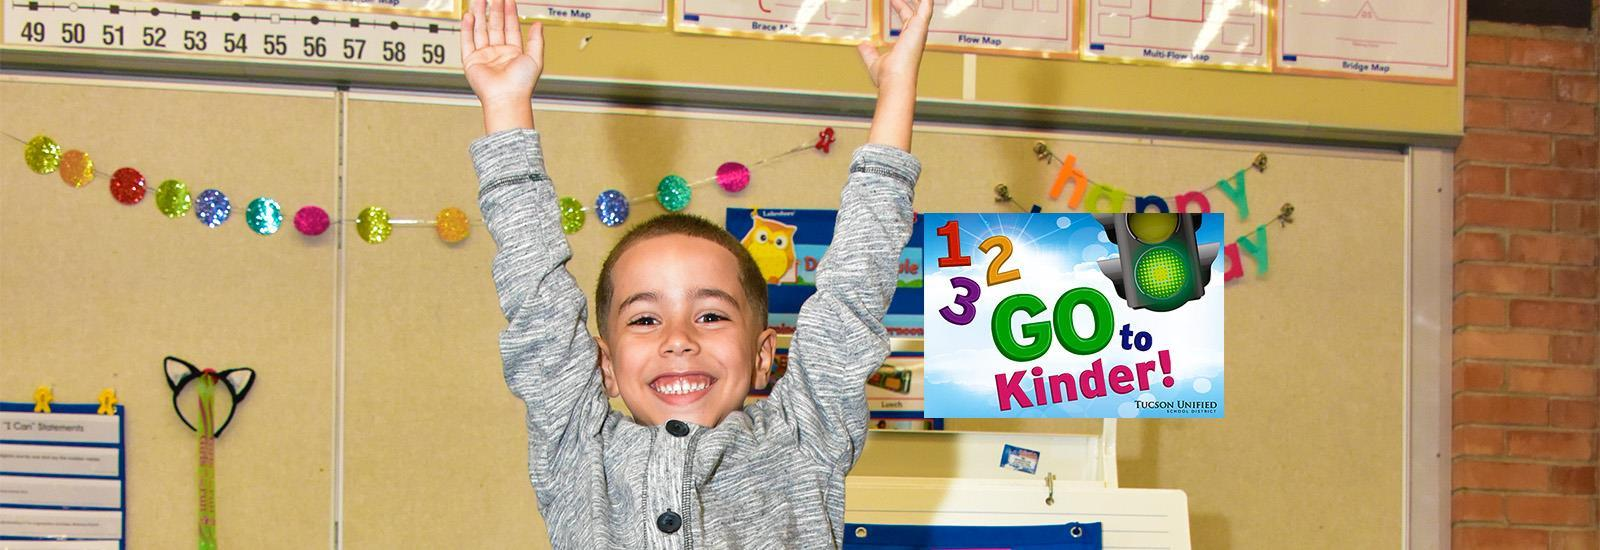 Get ready for kindergarten<br> with free all-day K!